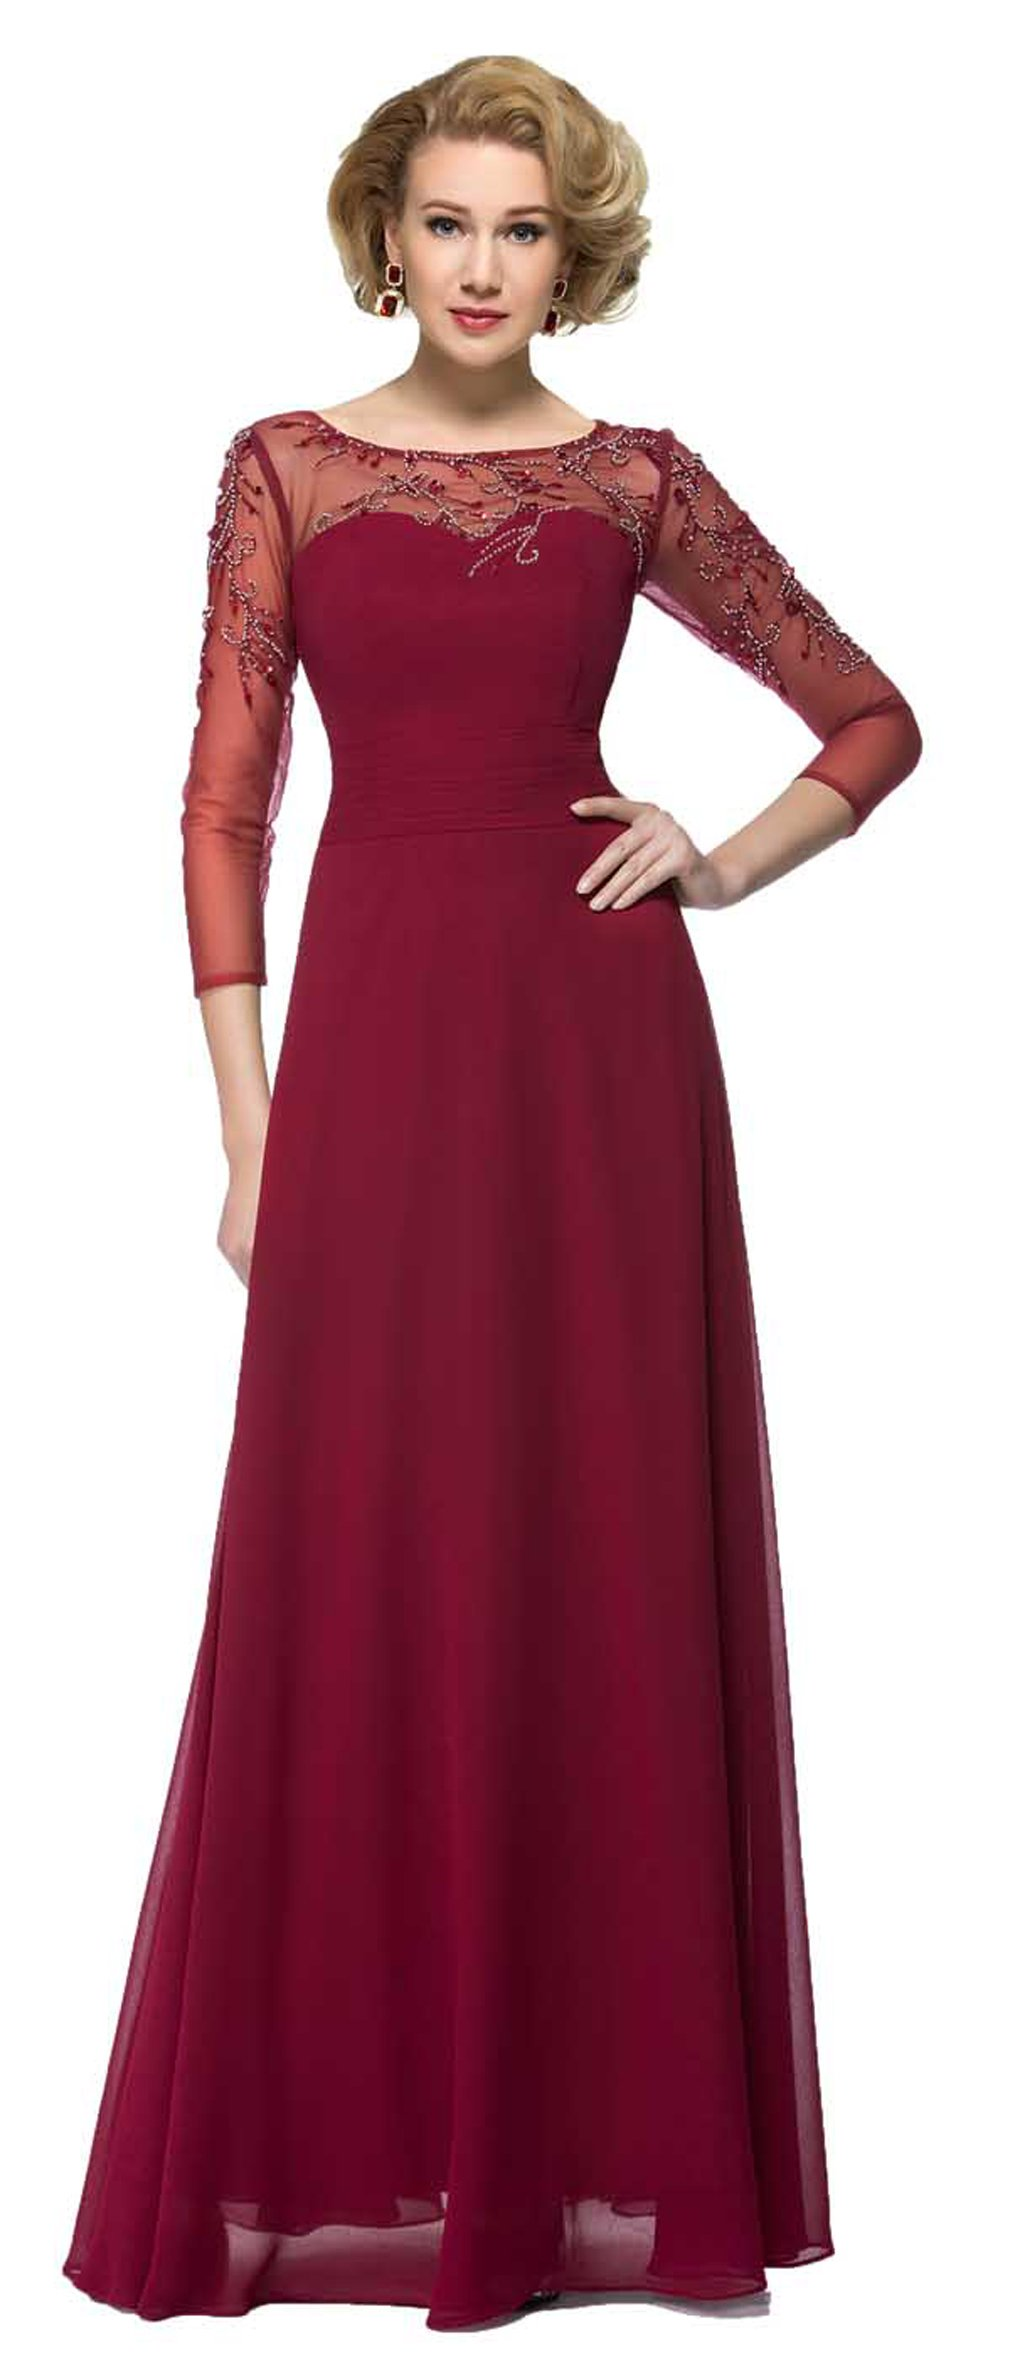 Snowskite Women's Elegant Long Sleeves Chiffon Beaded Mother of the Bride Dress Burgundy 8 by Snowskite (Image #1)